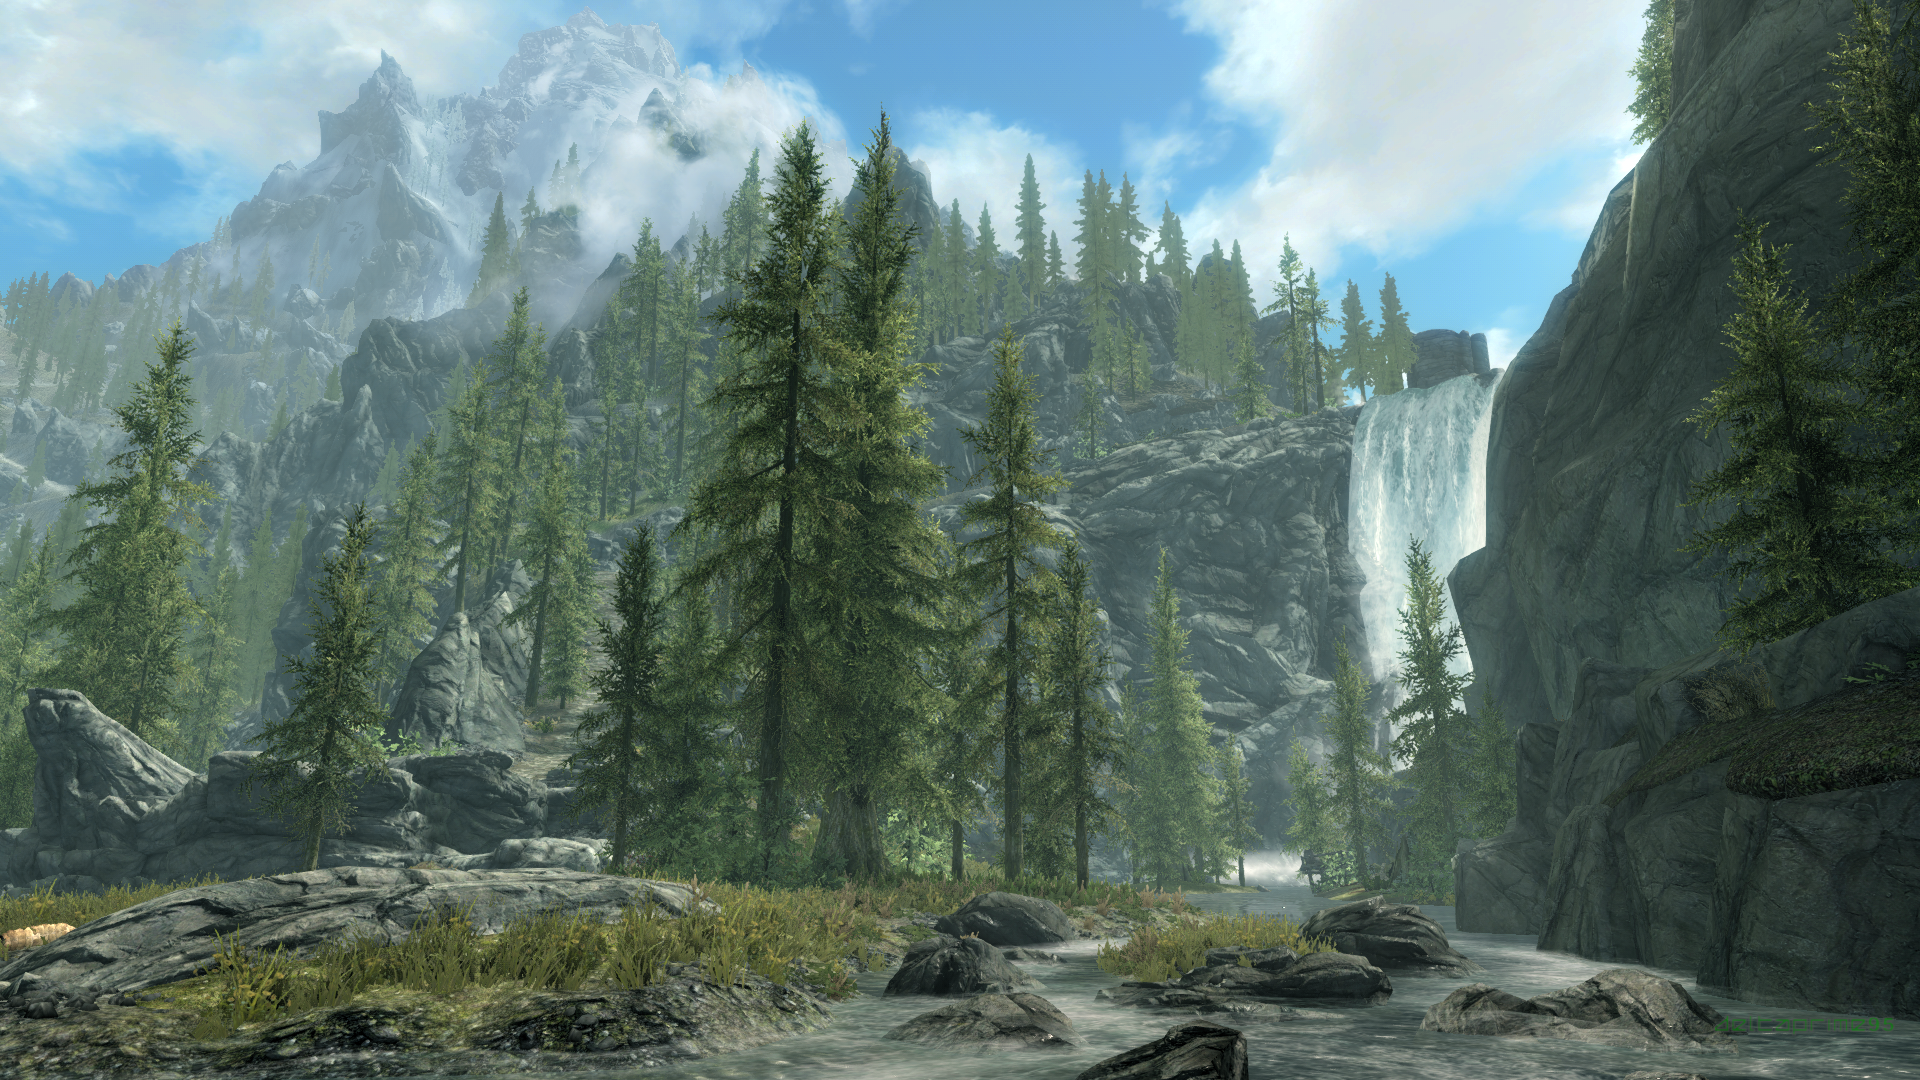 General 1920x1080 Skyrim Remastered The Elder Scrolls V: Skyrim PC gaming screen shot waterfall